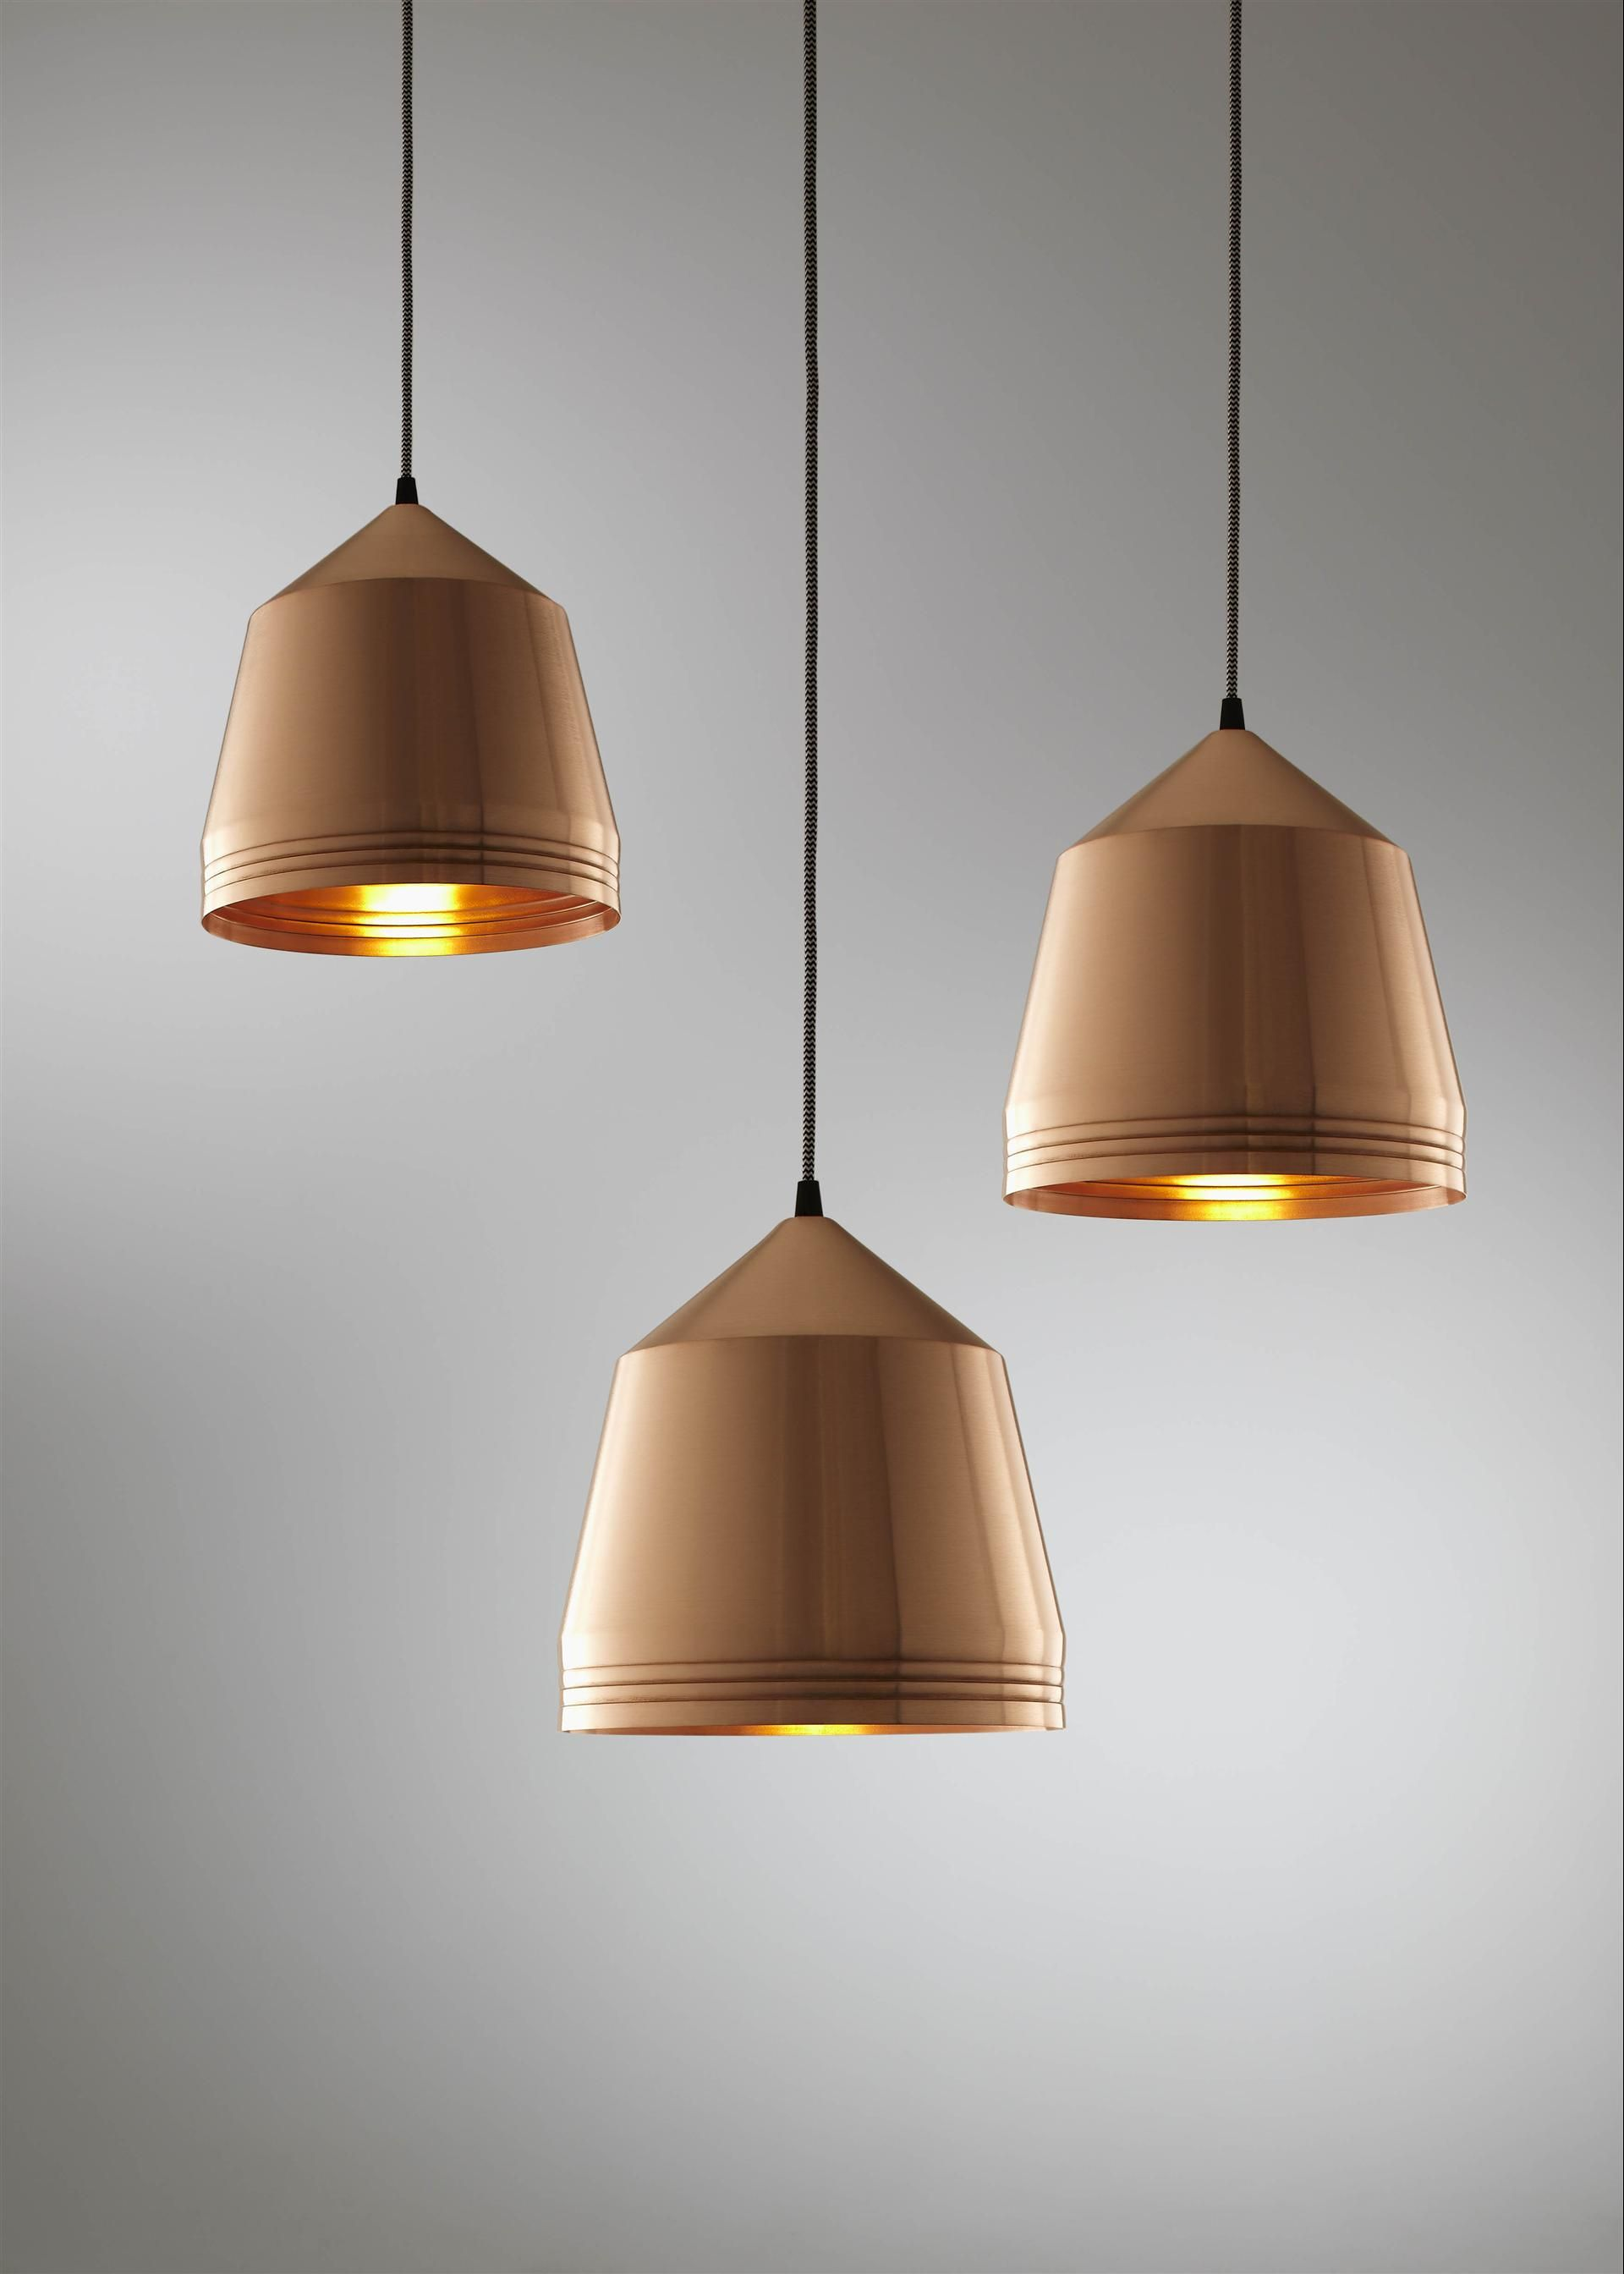 Copper Pendant Lights Kitchen Hammered Copper Pendant Lighting Kitchen Gold Bronze Copper